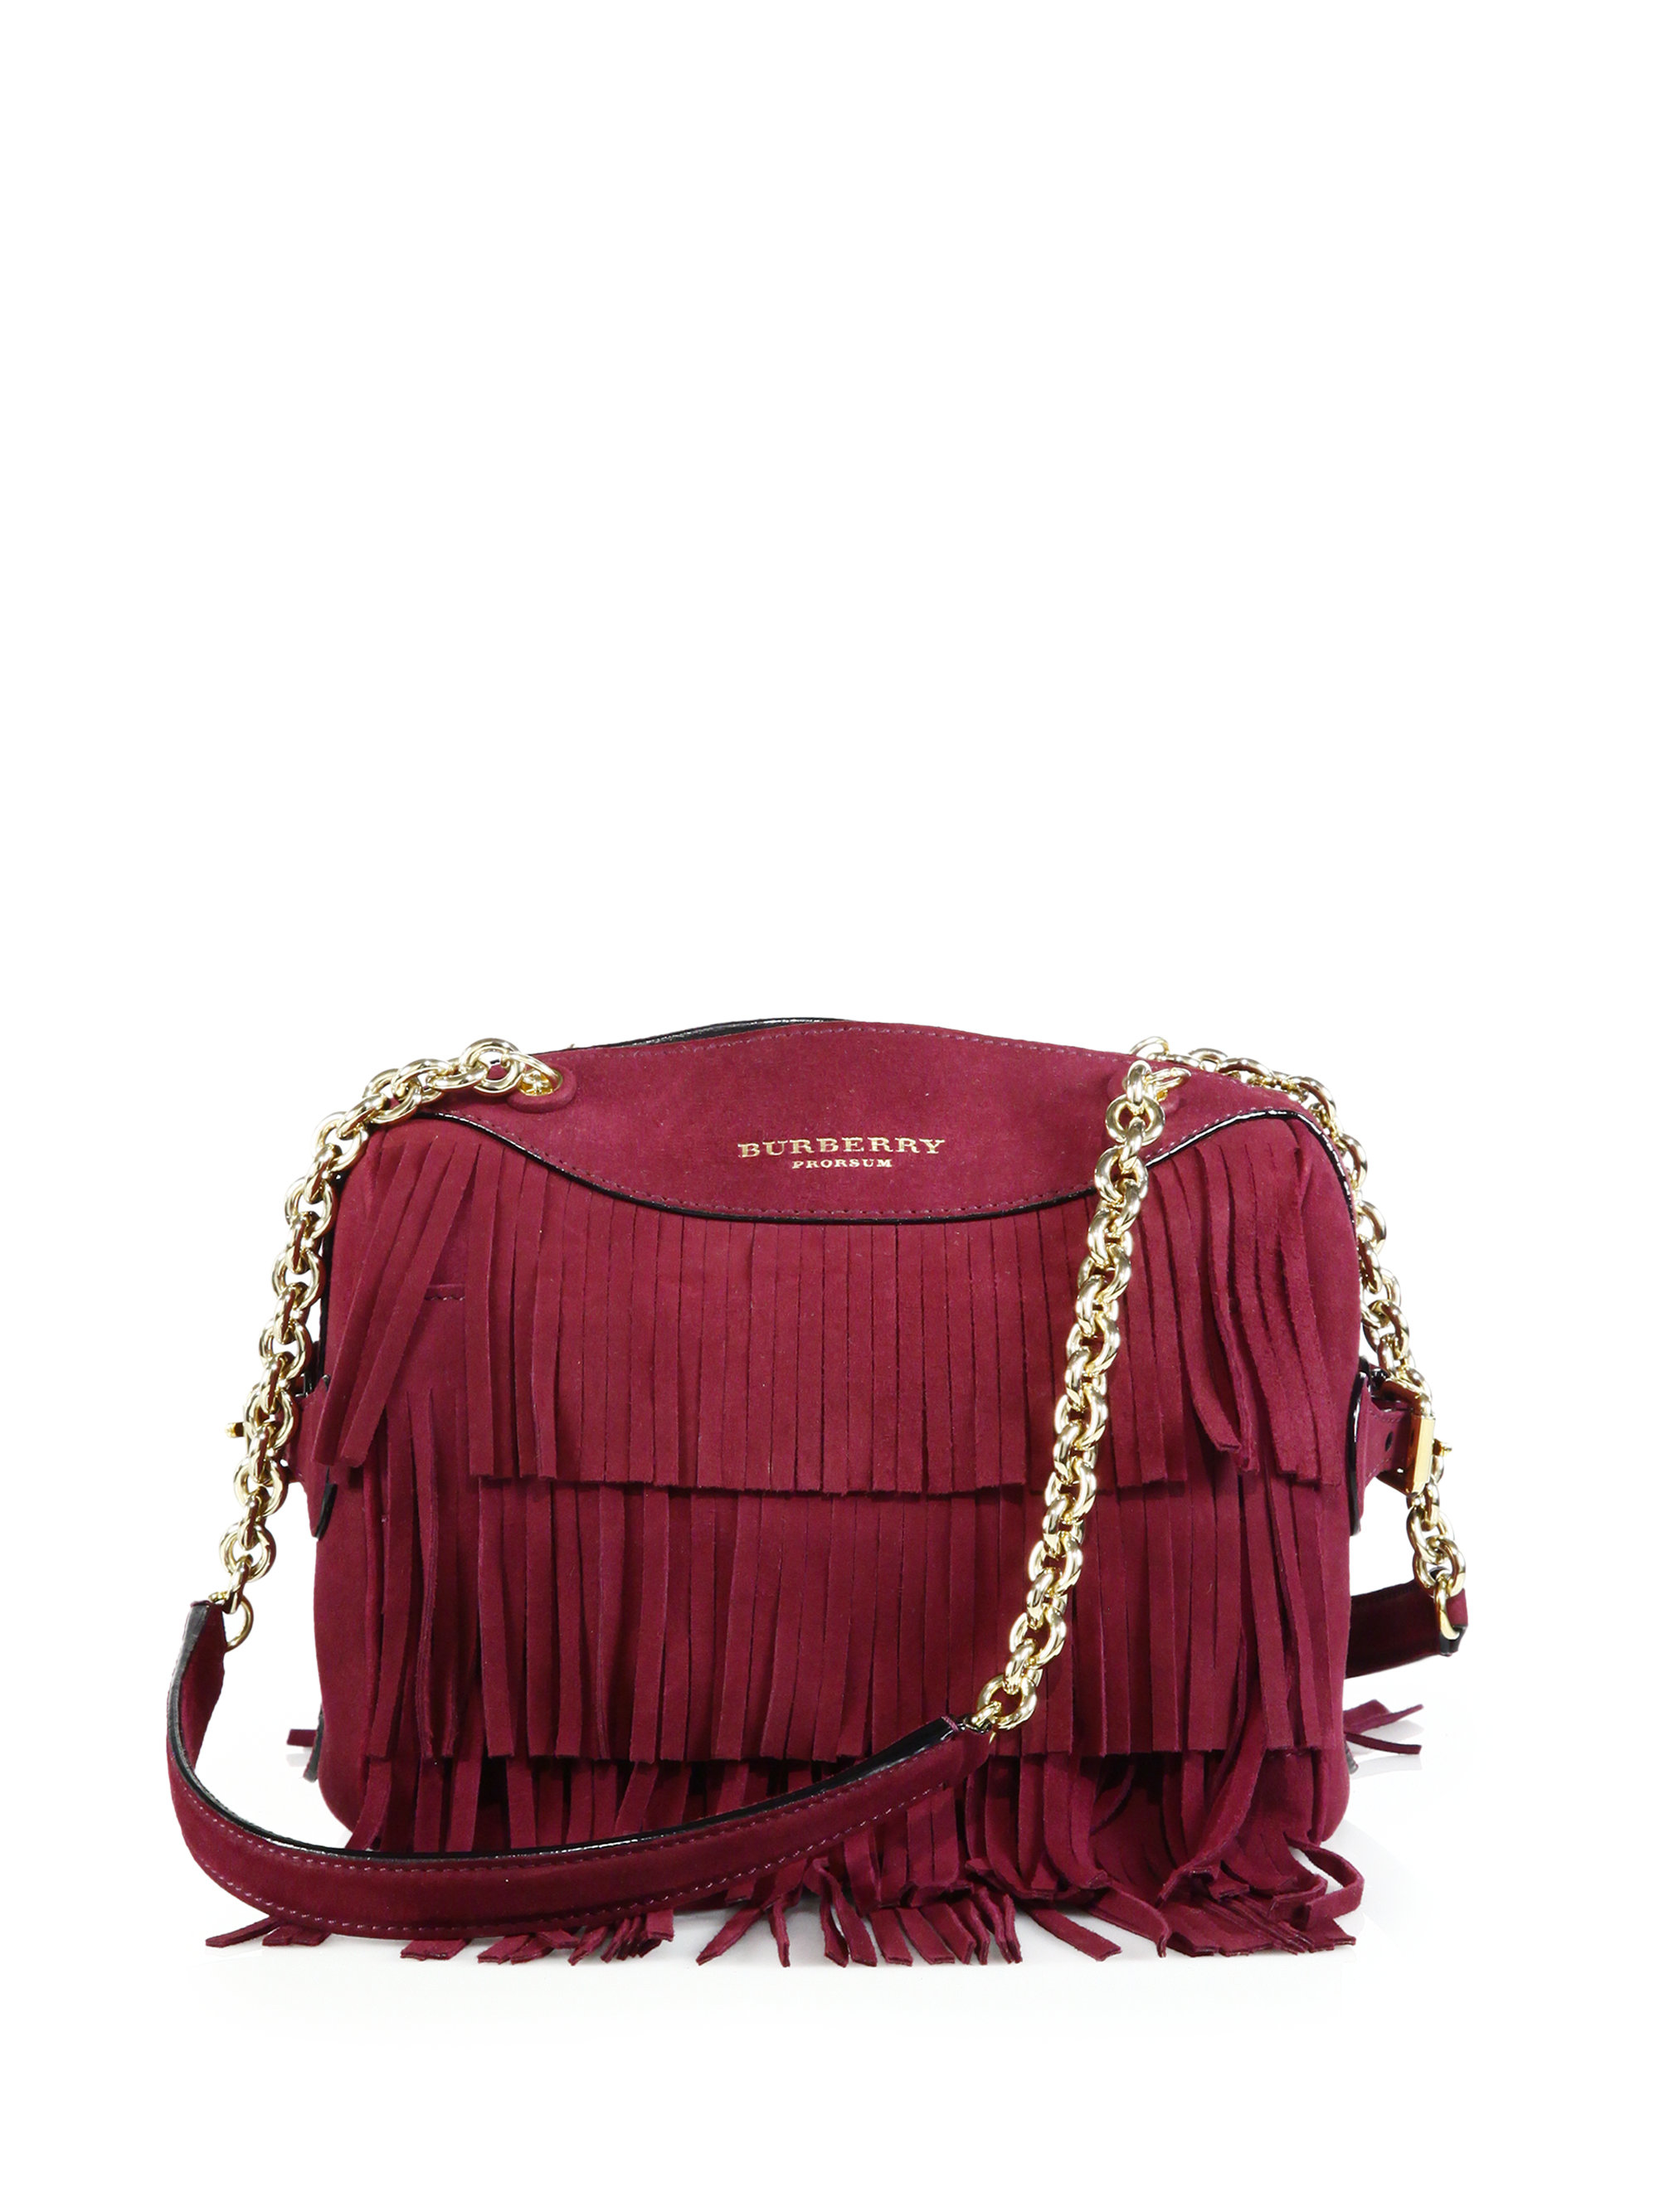 Burberry Mini Bee Fringed Suede Shoulder Bag in Red | Lyst